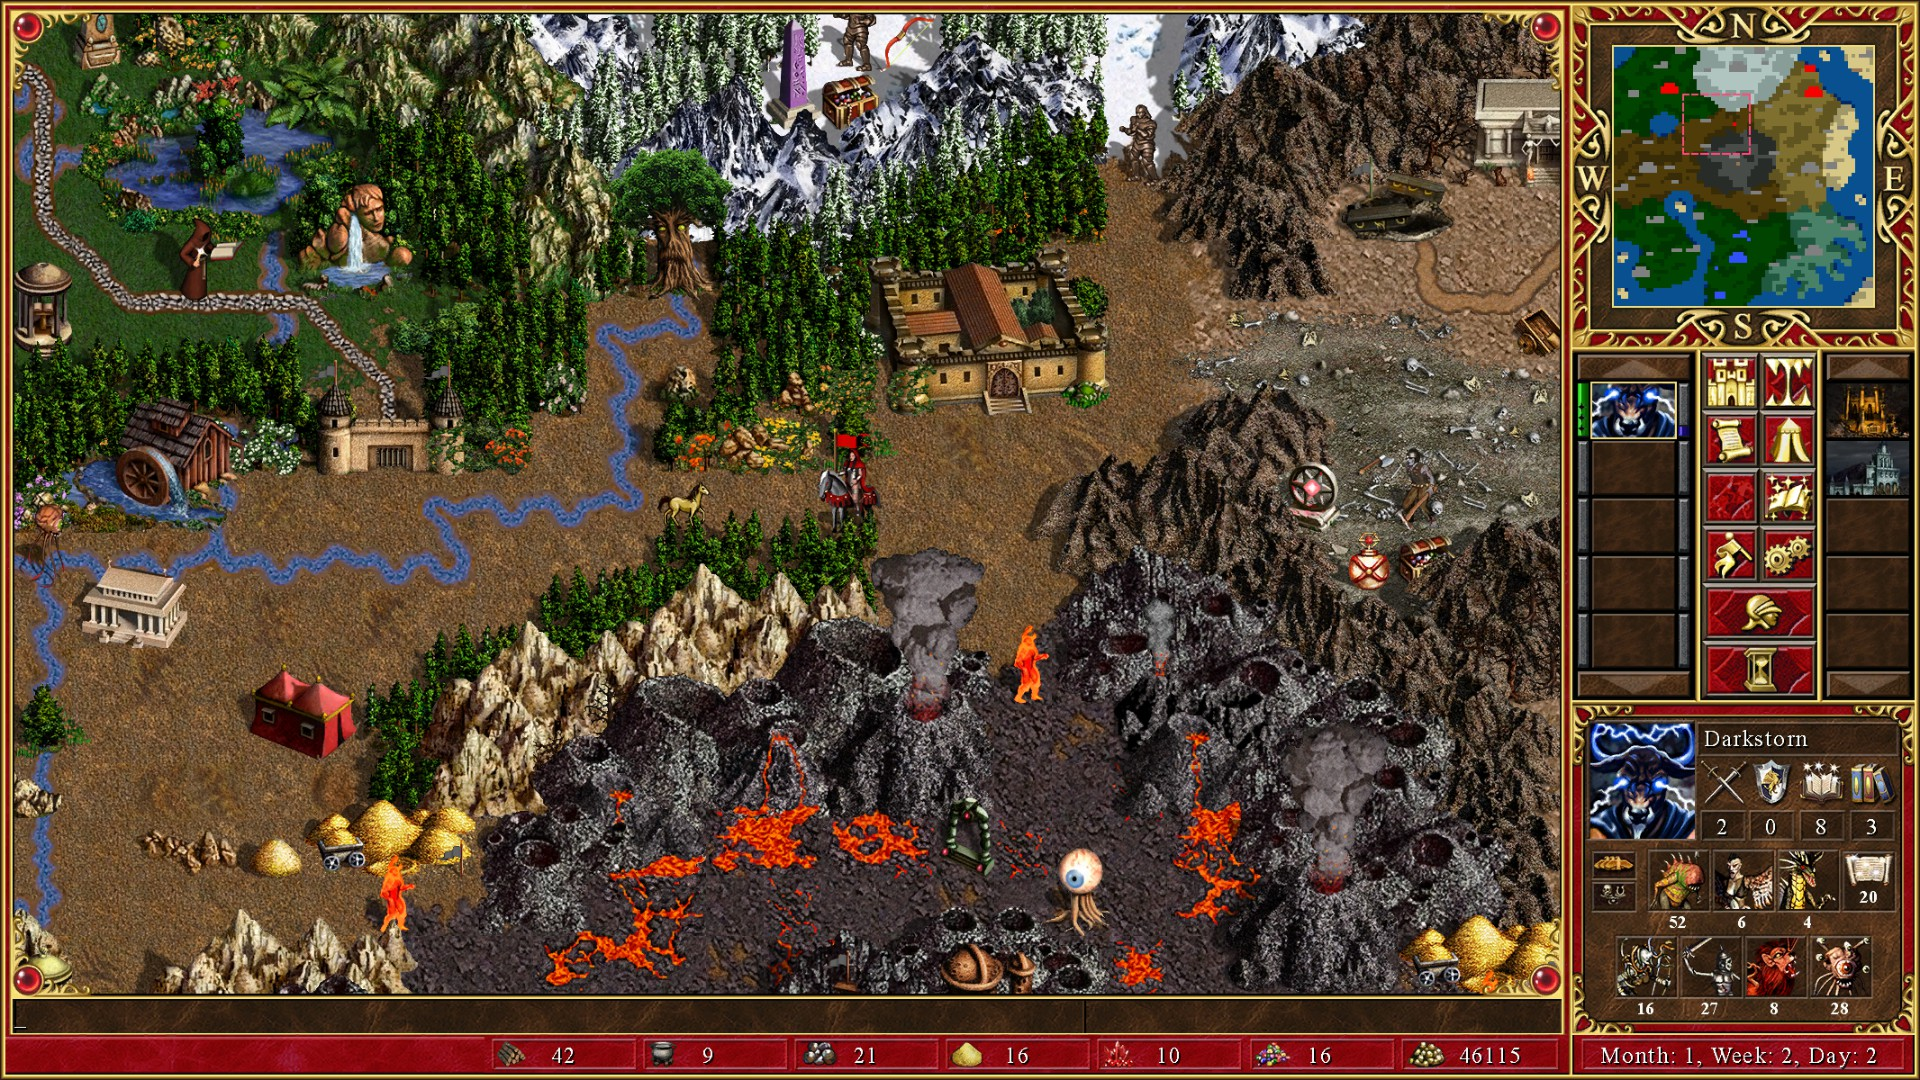 The Story Of Heroes Of Might And Magic, The Illustrious, Ageless Turn-Based Strategy